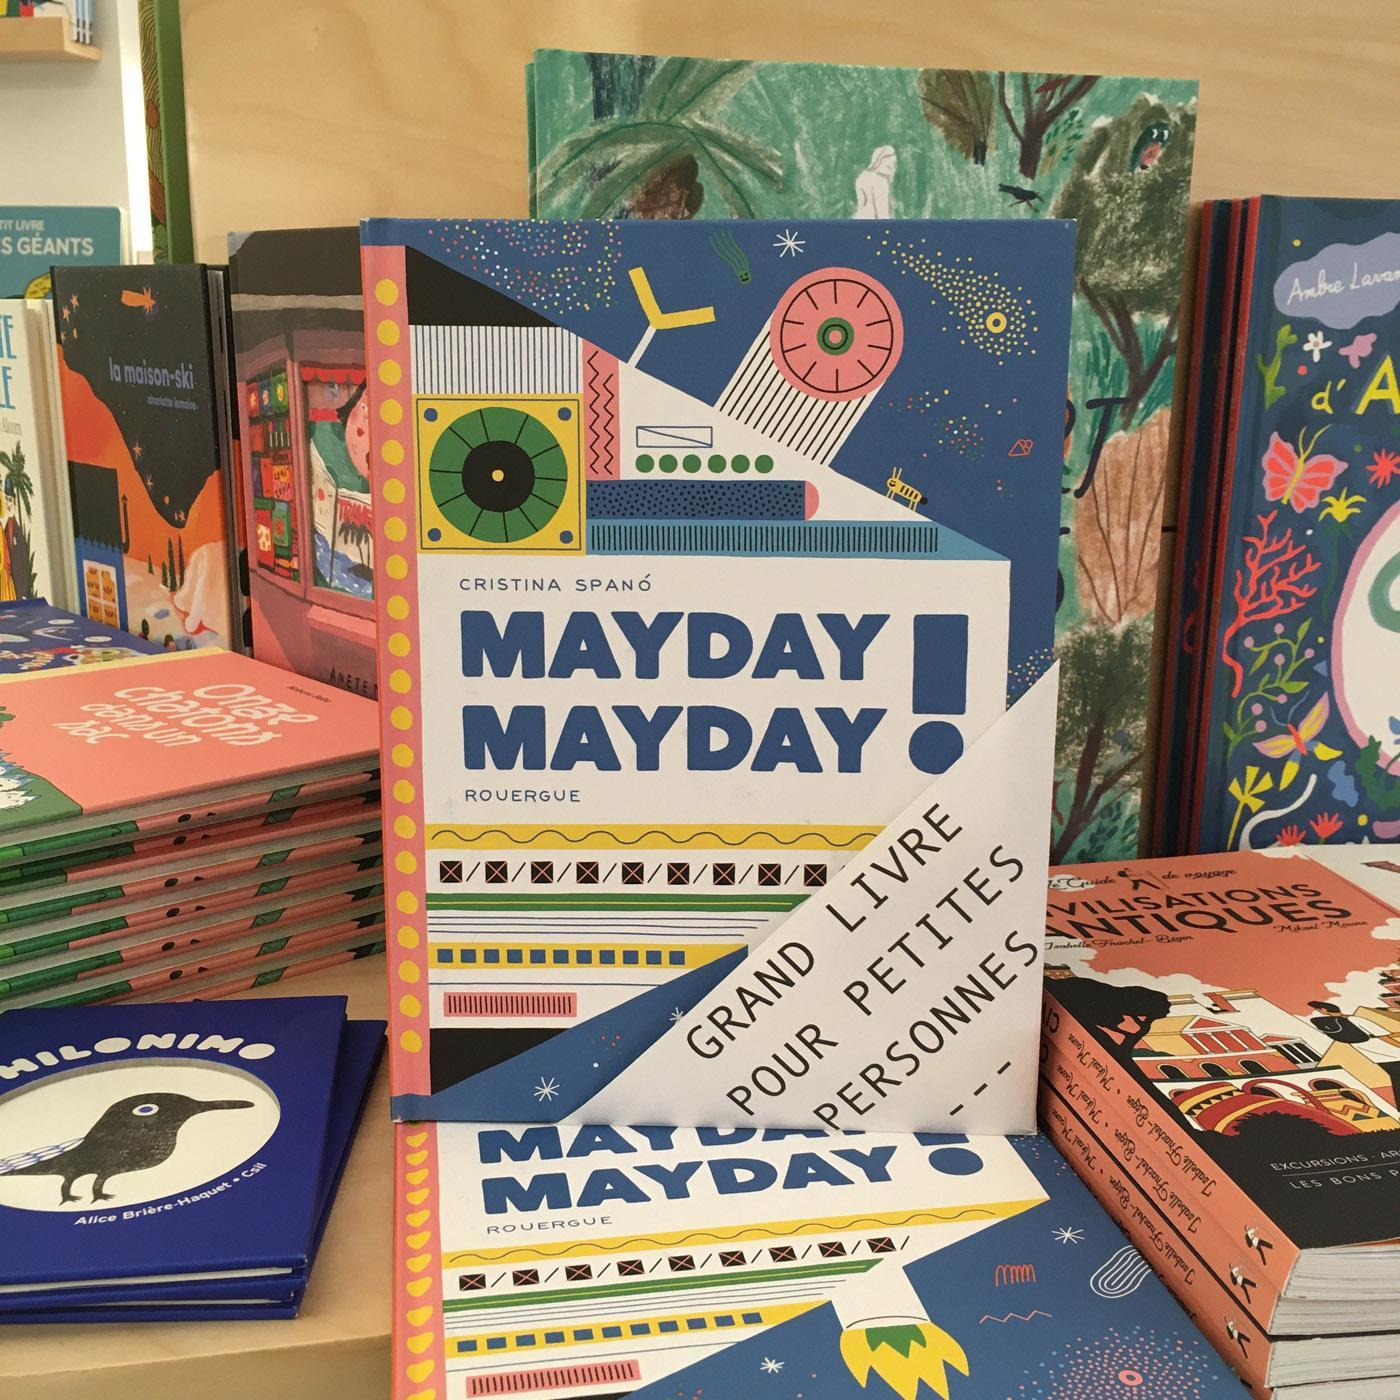 Grands livres pour petites personnes #26 - Mayday Mayday !